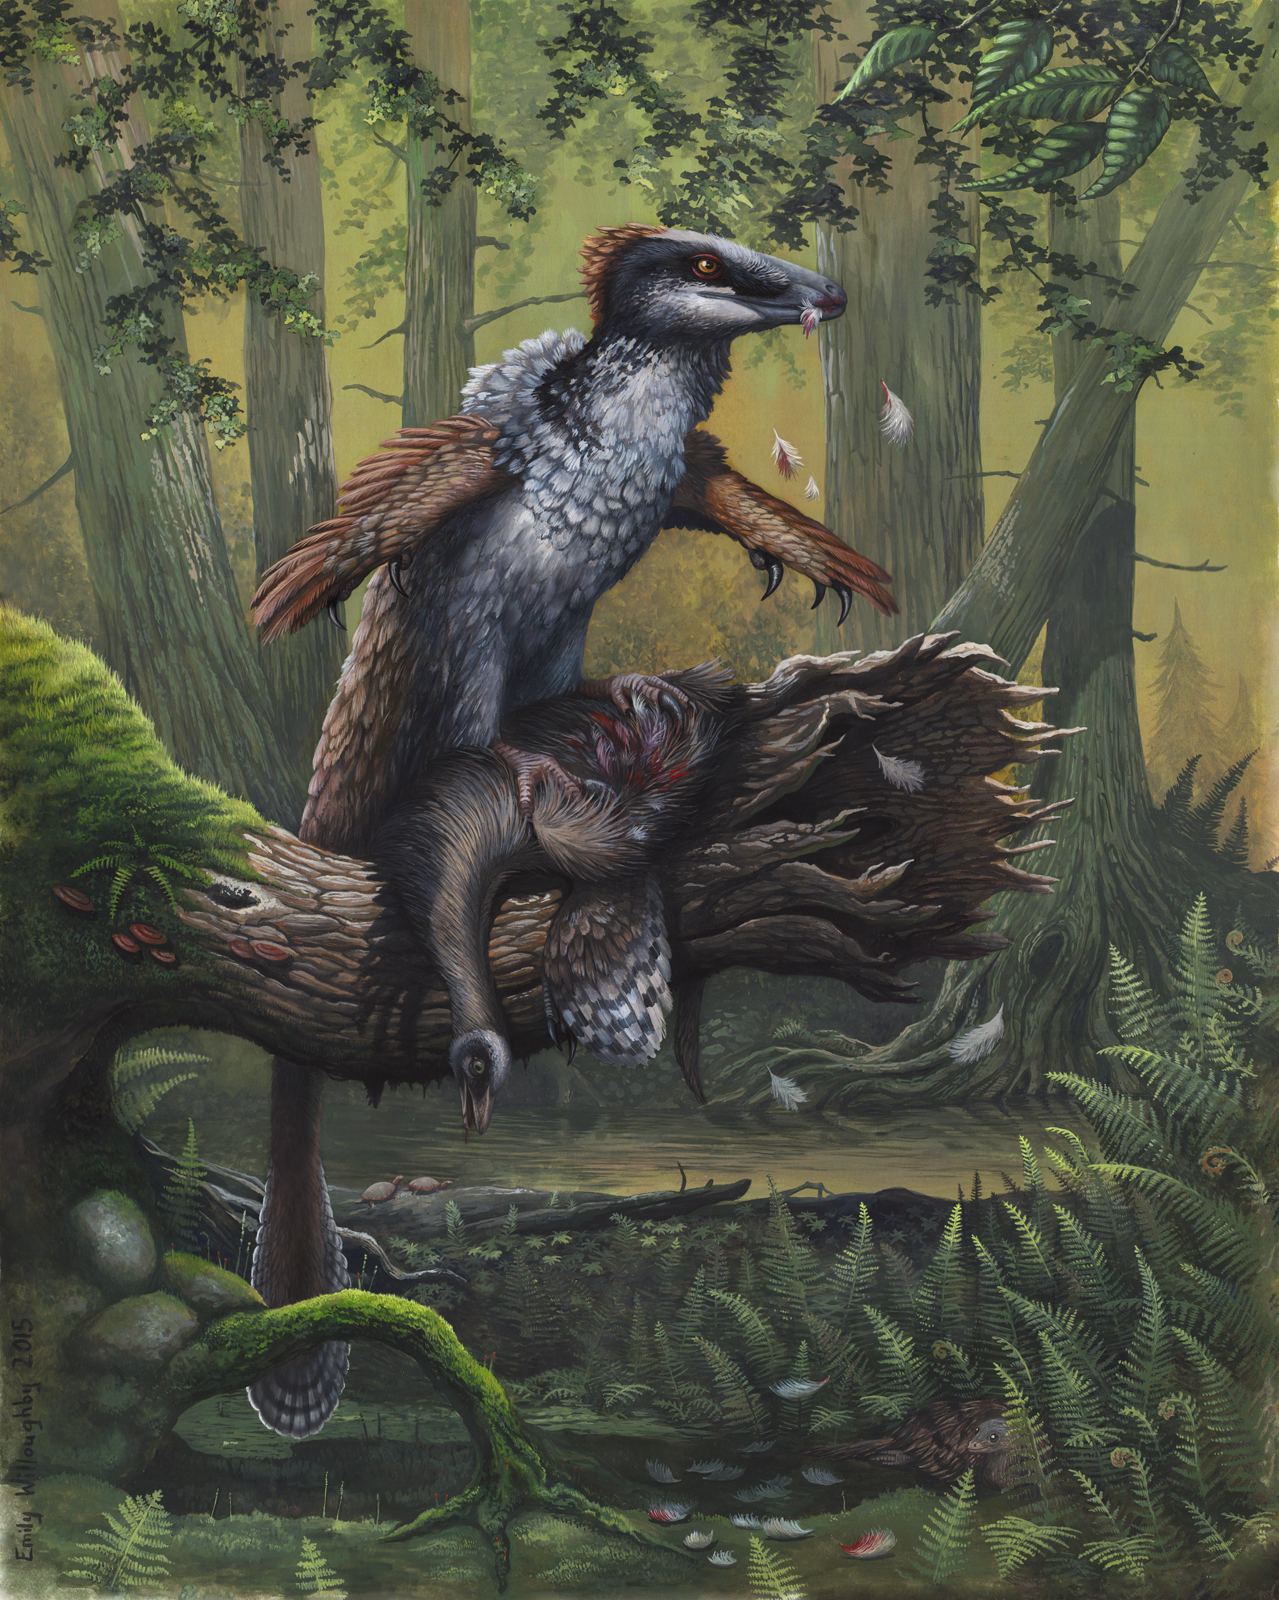 Dakotaraptor's Ornithomimus Dinner by EWilloughby